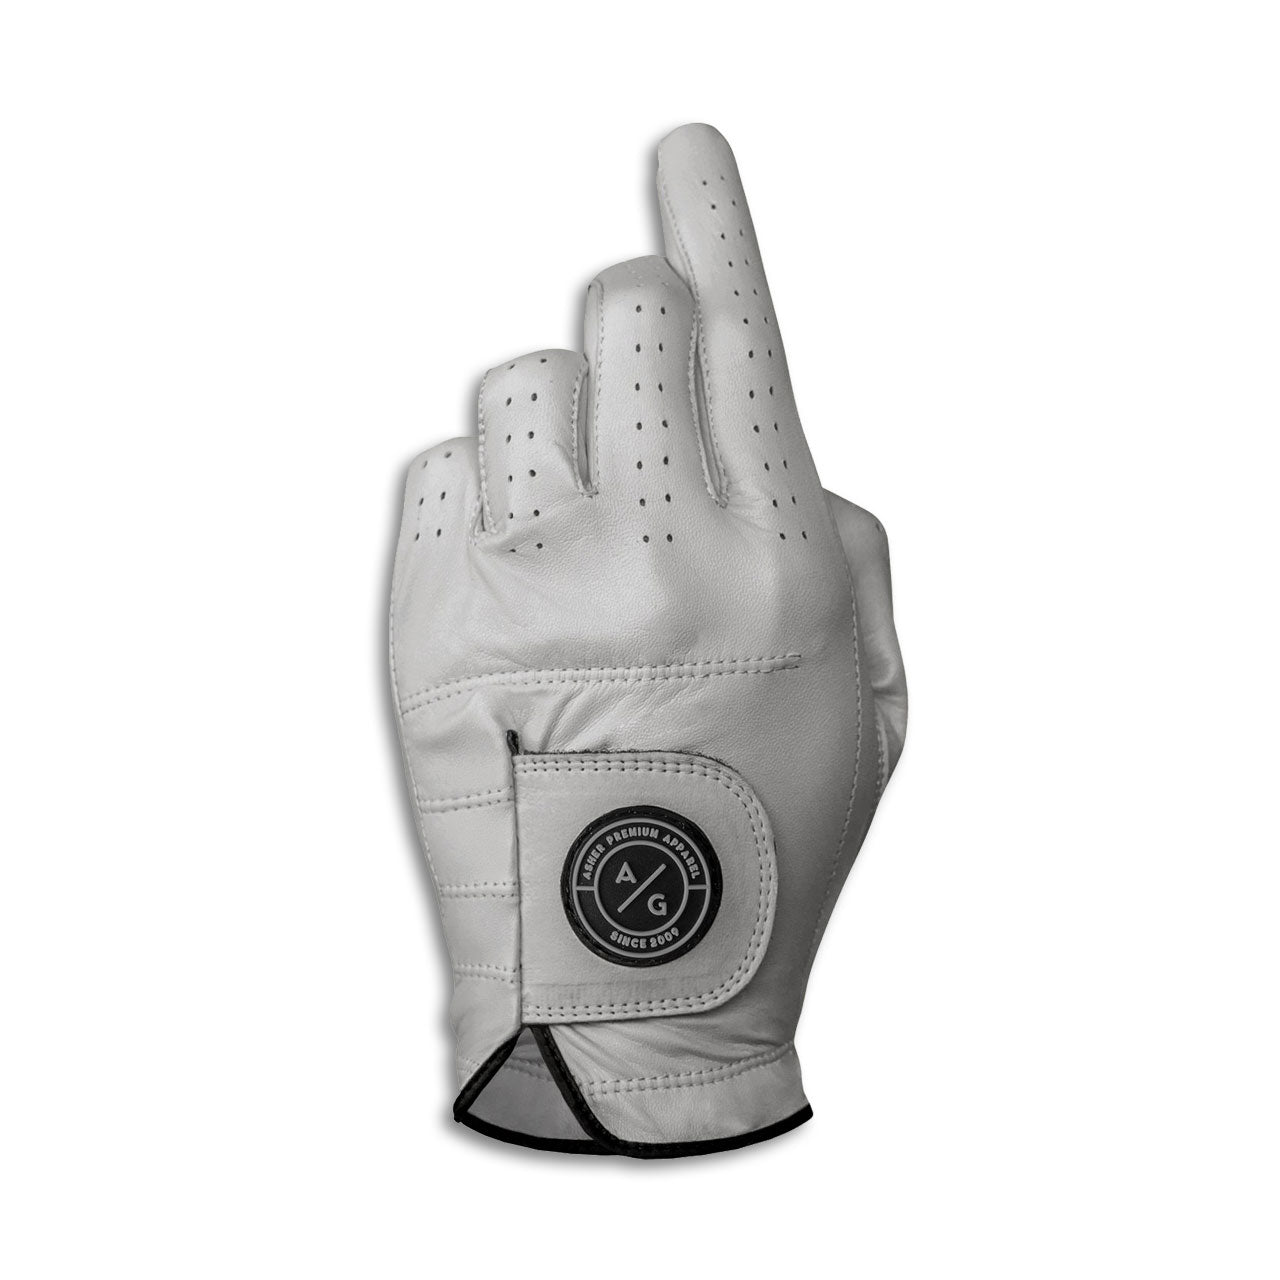 Asher Nimbus Golf Glove